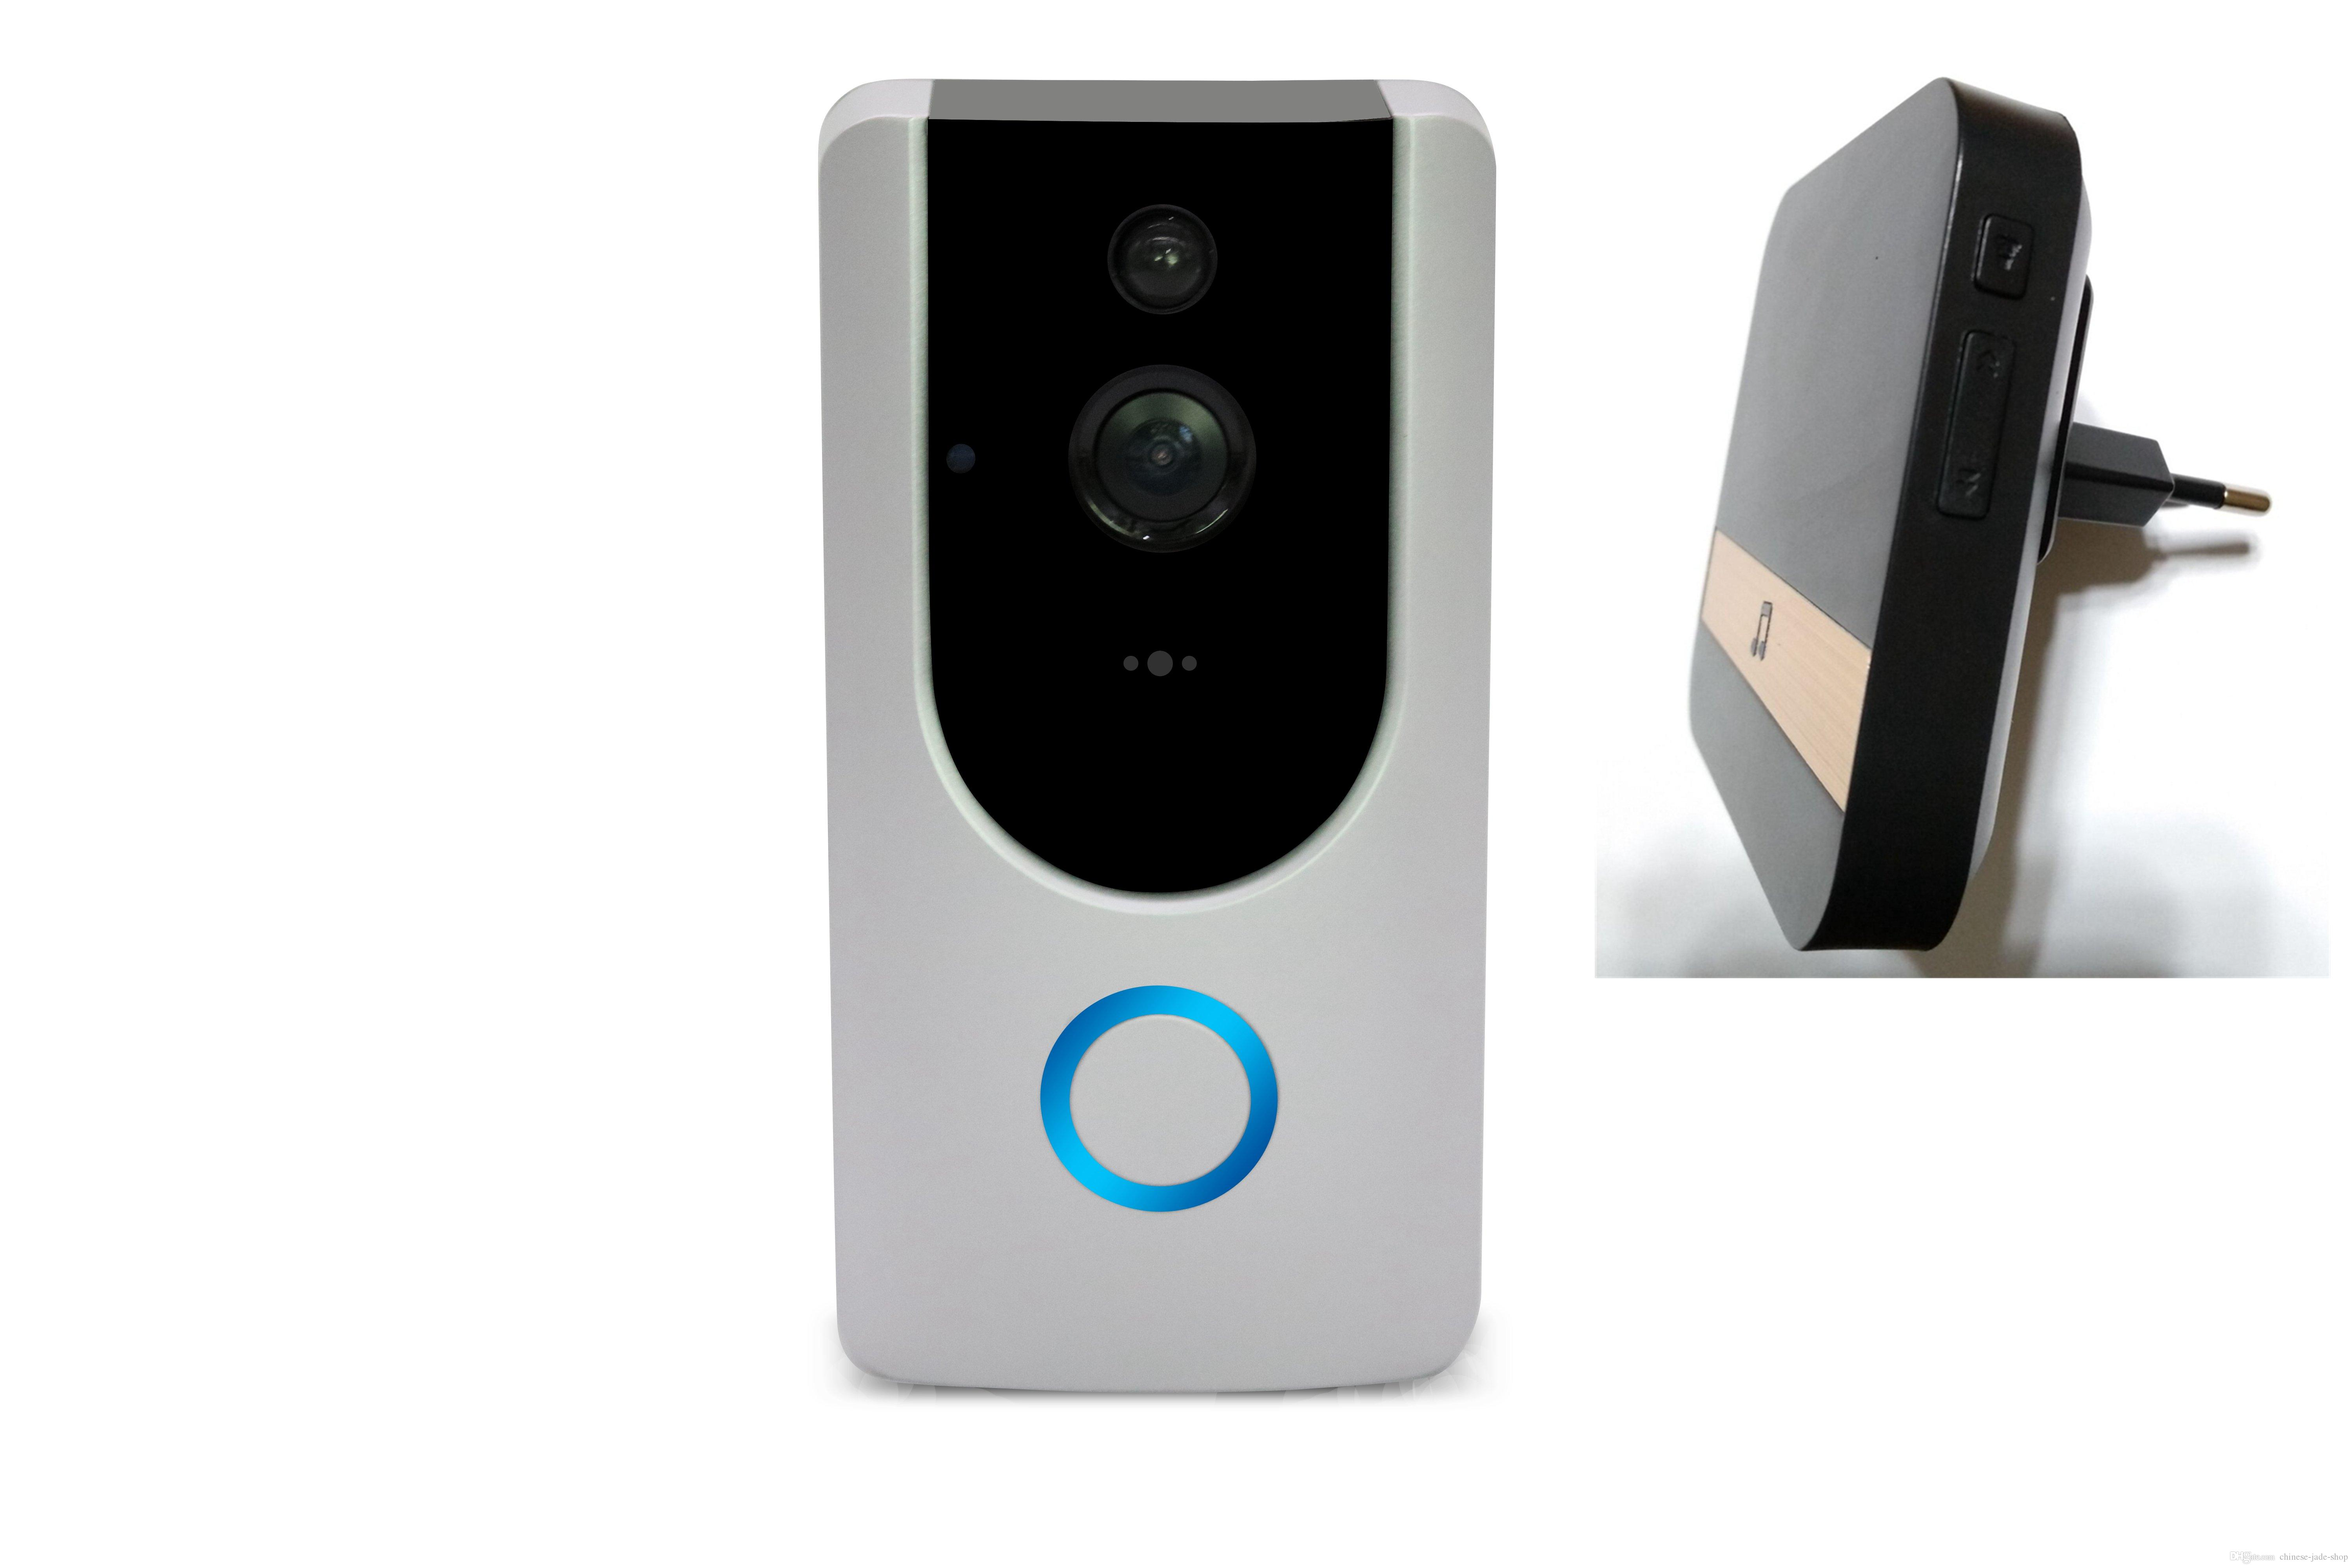 2019 m2 720p pir wireless wifi video doorbell 166 wide degree2019 m2 720p pir wireless wifi video doorbell 166 wide degree intercom pir motion detection night vision alarm security with indoor chime from chinese jade